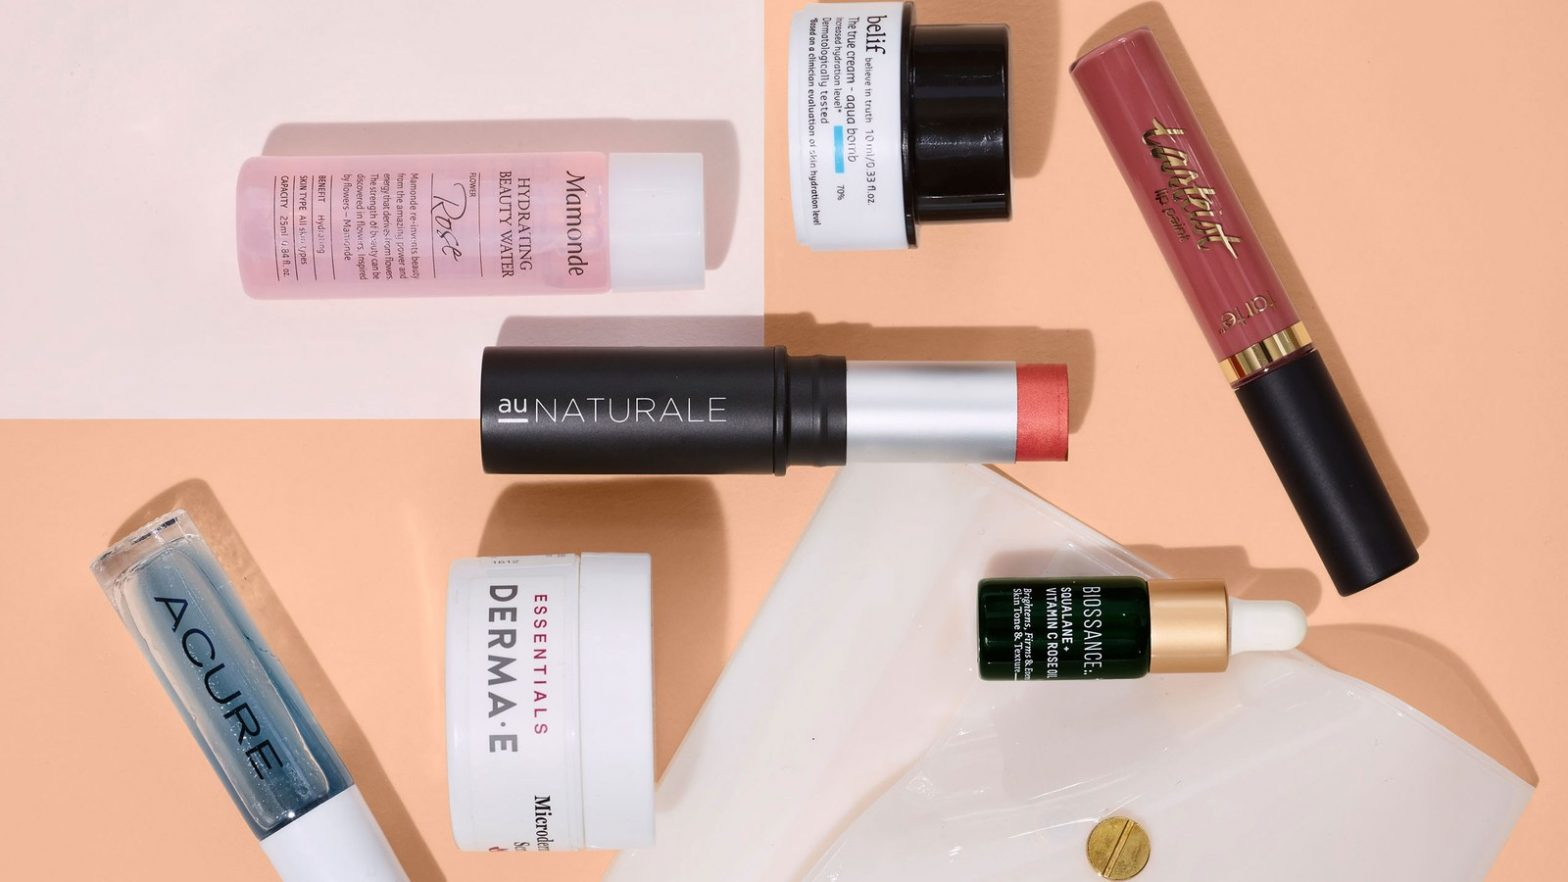 This month, there are several versions of the Allure Beauty …